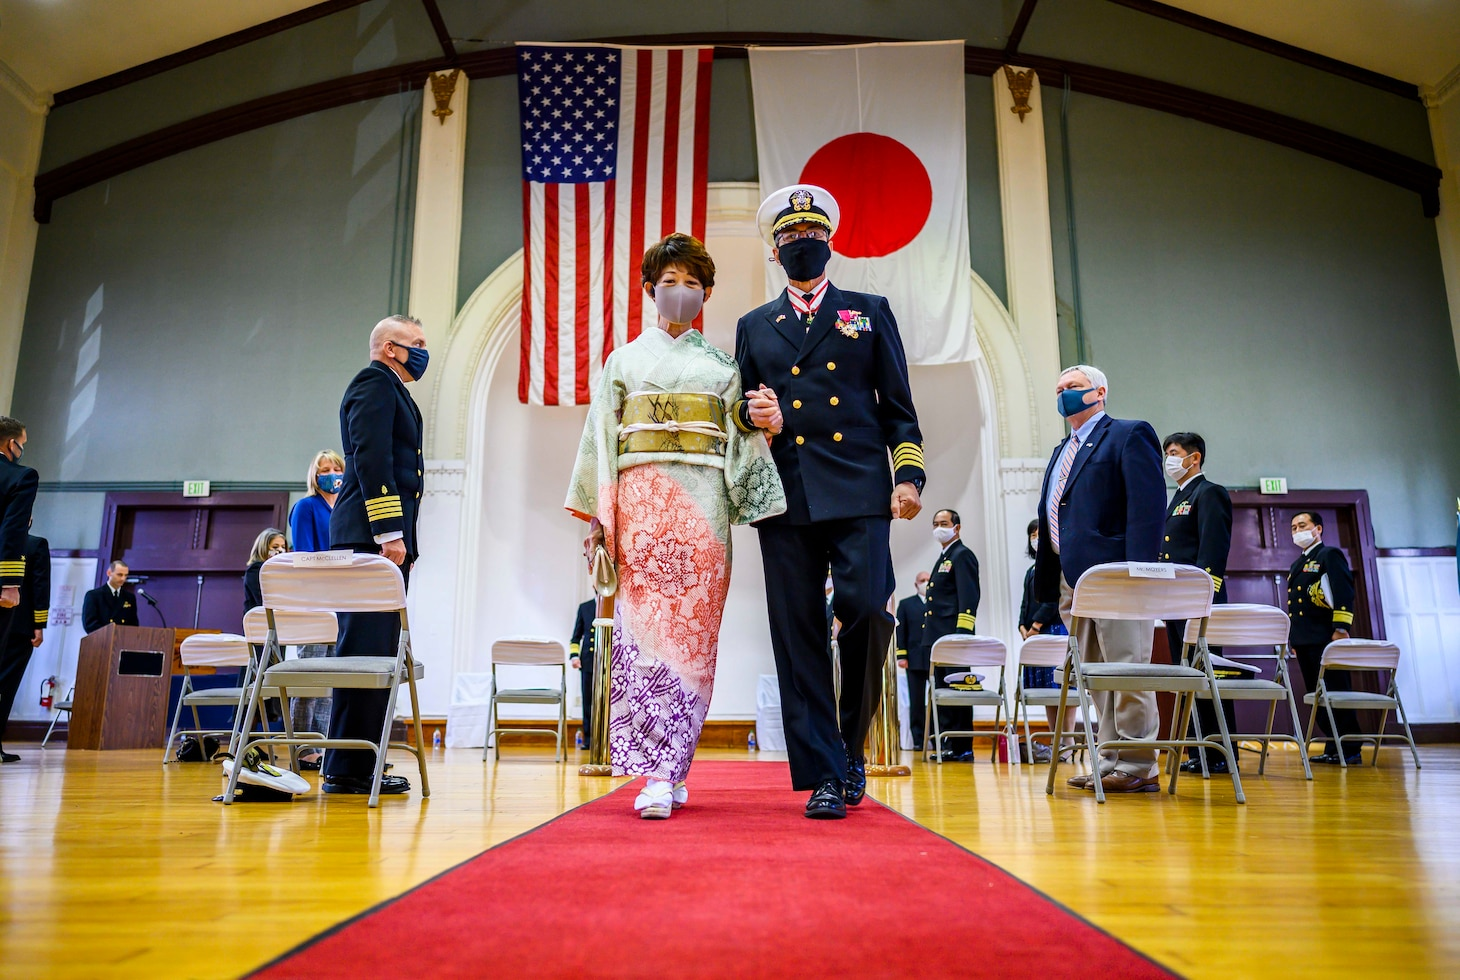 YOKOSUKA, Japan (Nov. 30, 2020) Capt. Harry Ganteaume, Submarine Group 7's former Chief of Staff and Operations Officer, and his wife, Sumiko, are rung ashore during his retirement ceremony at Commander Fleet Activities Yokosuka. (U.S. Navy photo by Mass Communication Specialist 2nd Class Taylor DiMartino)